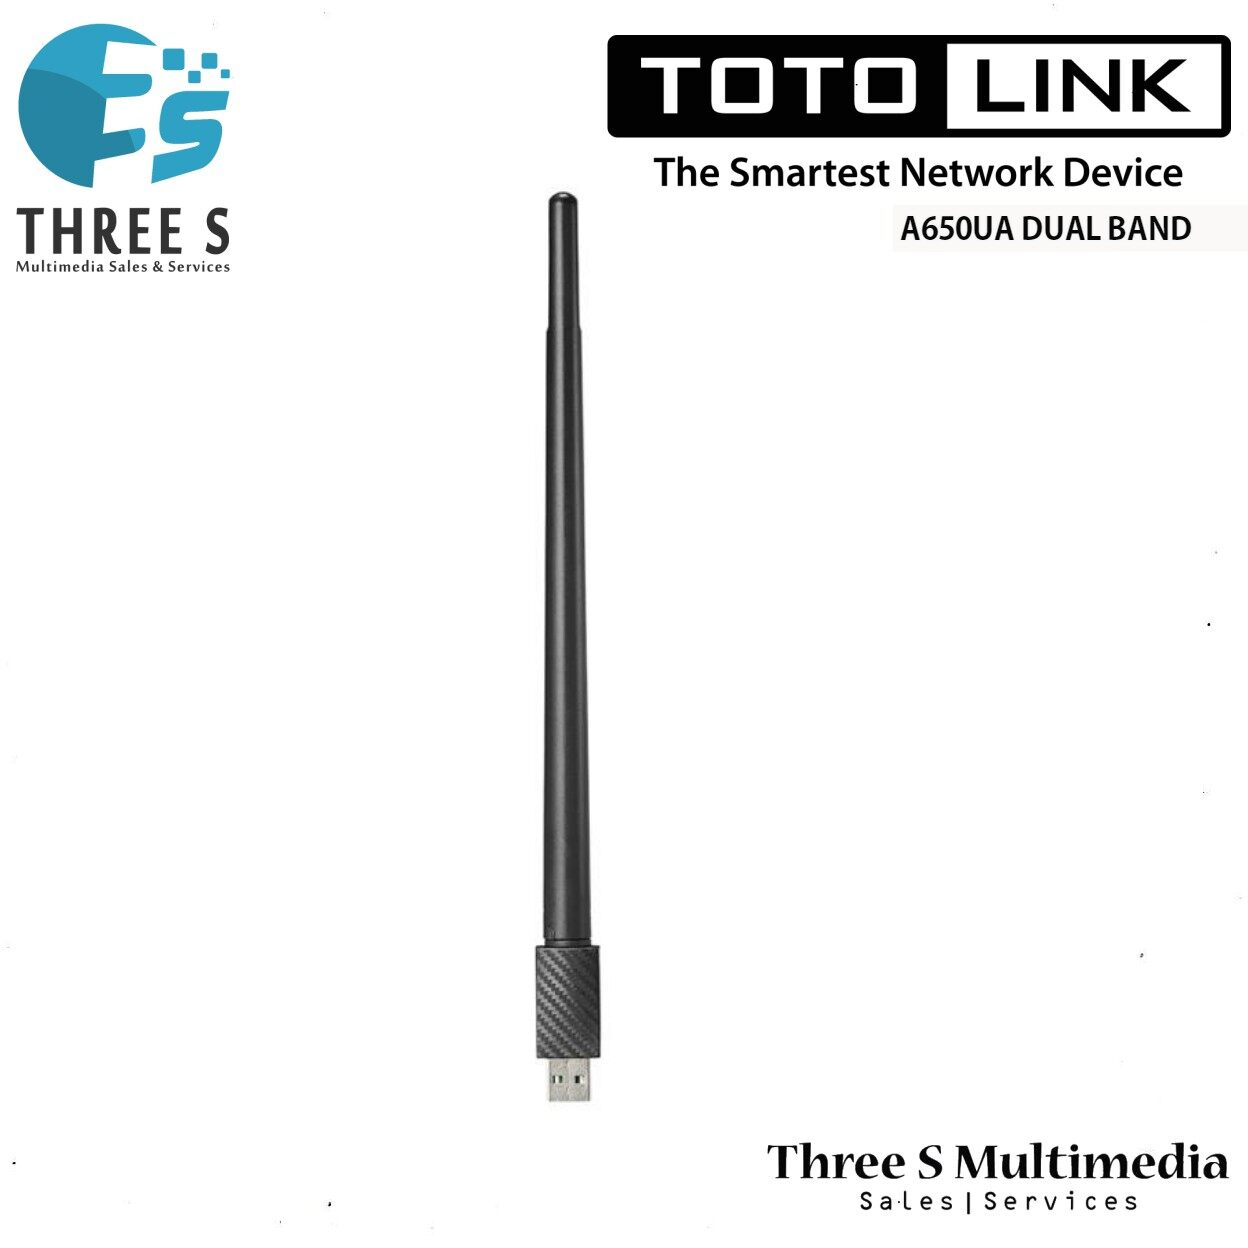 TOTO LINK AC650 Dual Band USB WiFi Adapter With Antenna A650UA